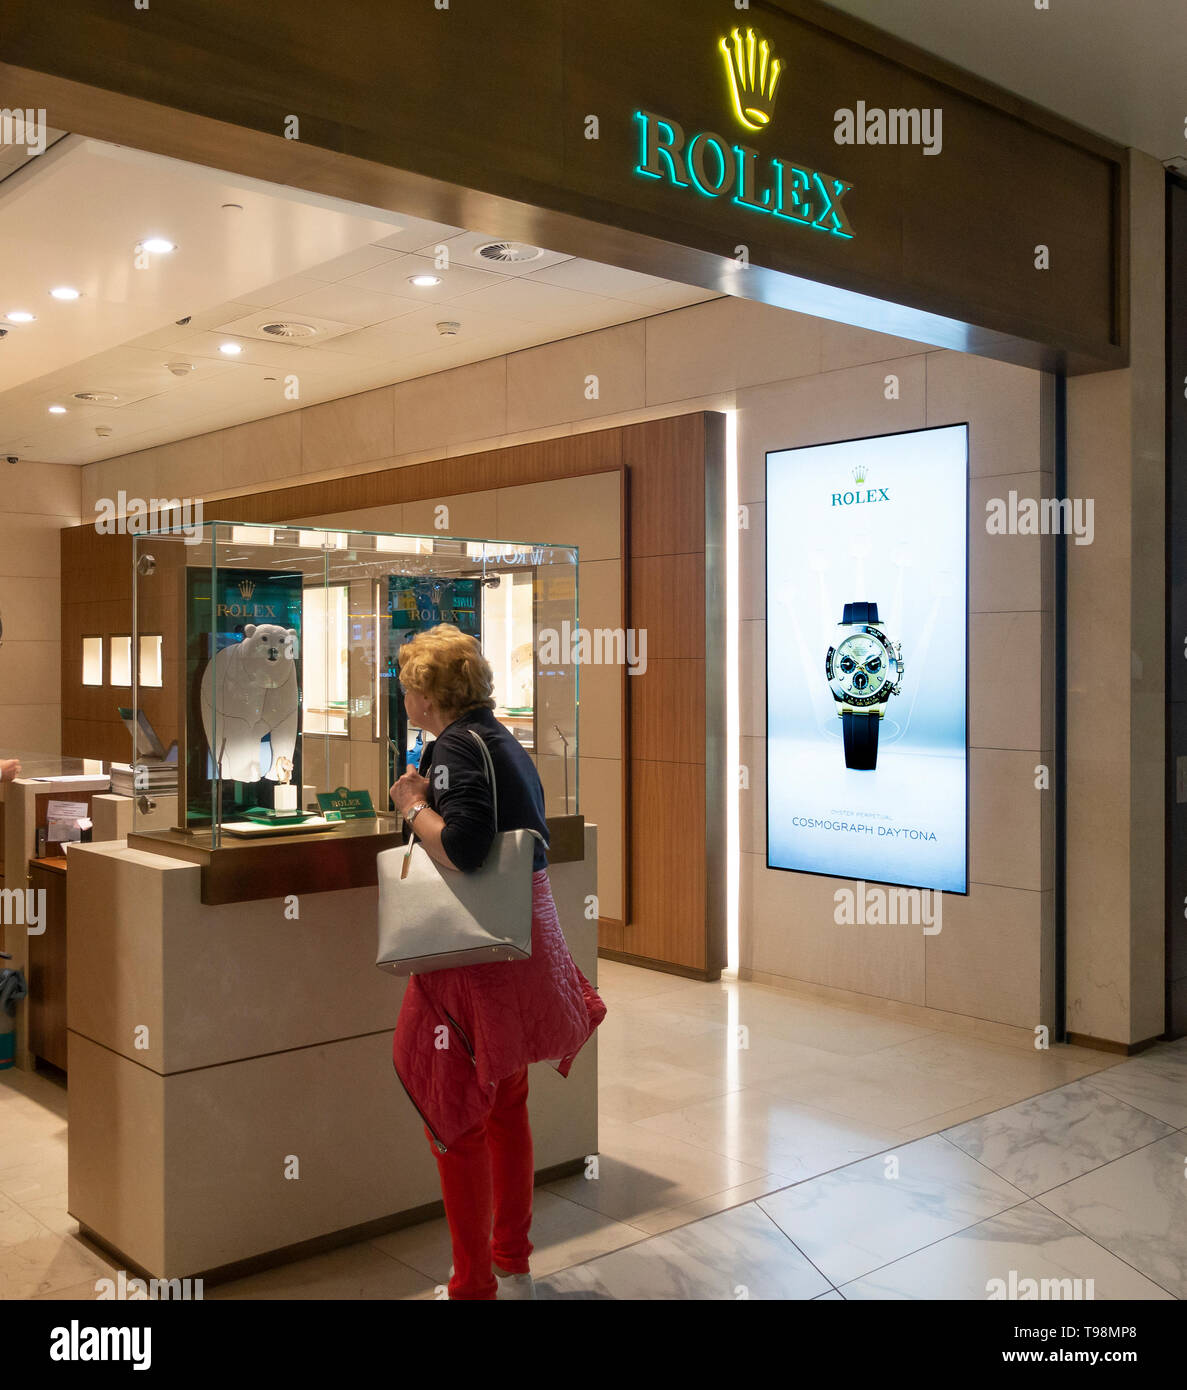 A woman passenger looks at a watch in a display in the Rolex retail outlet in Schiphol Airport, Amsterdam, the Netherlands. - Stock Image